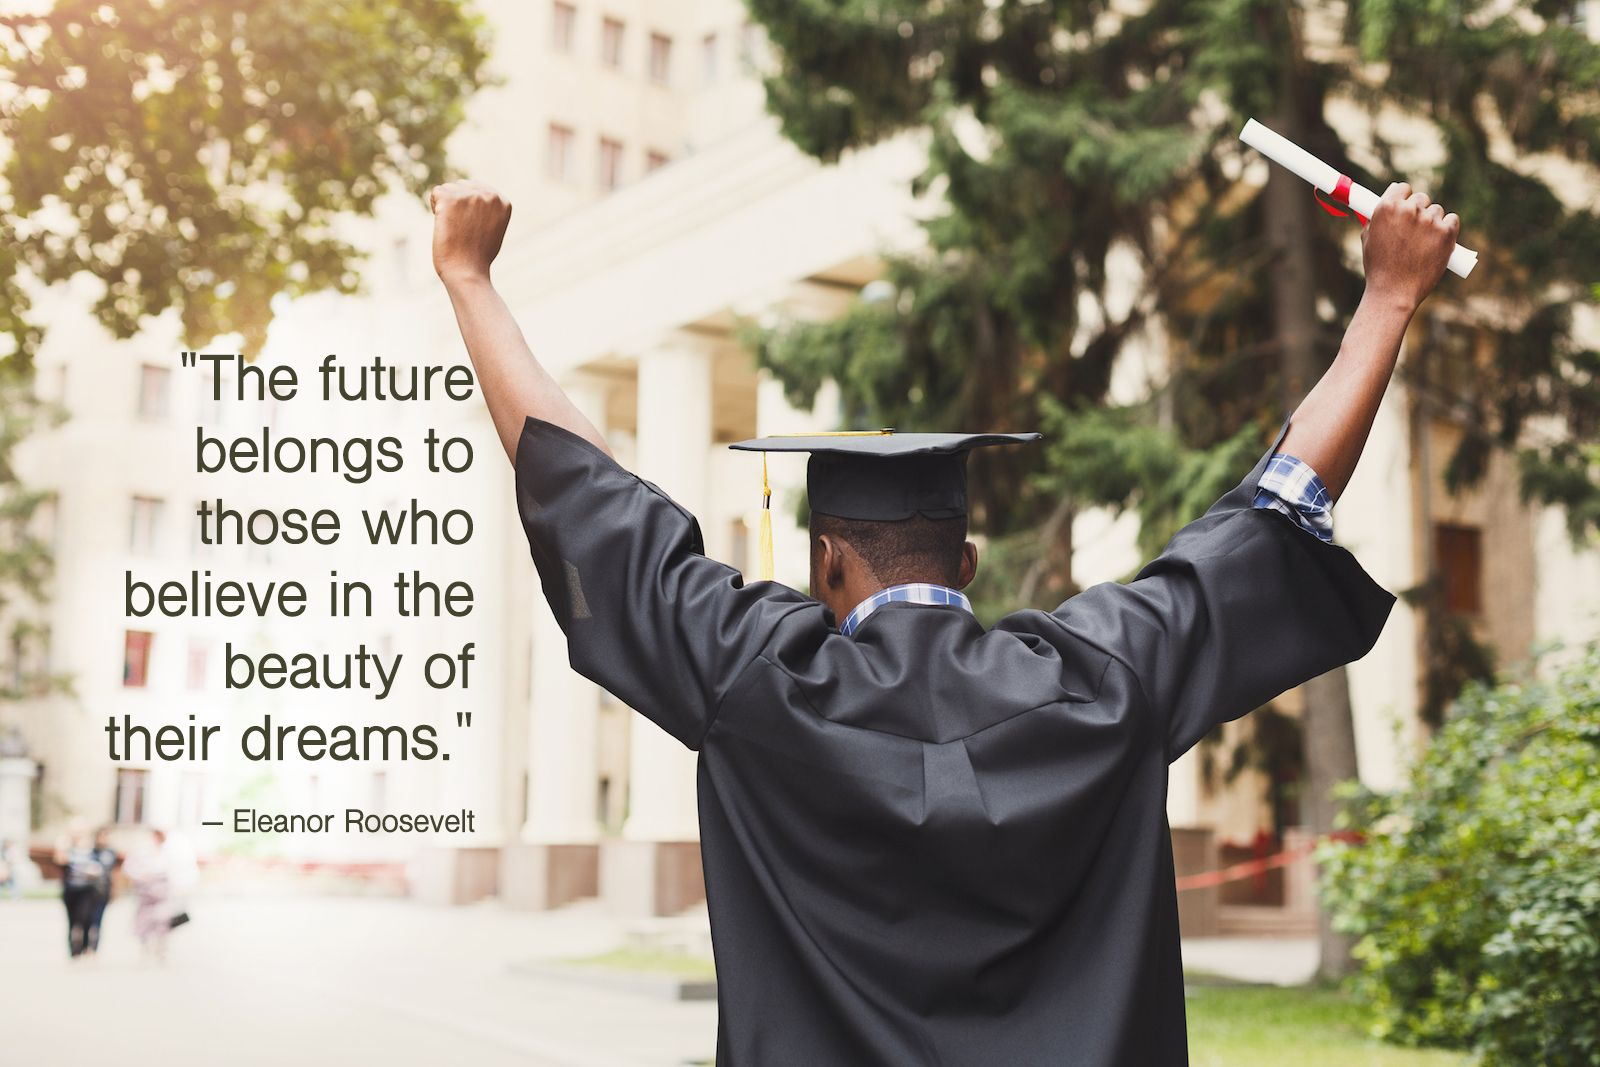 100 Graduation Captions For Your Instagram 2019 Shutterfly Caption For Yourself Best Student Loans Graduation Day